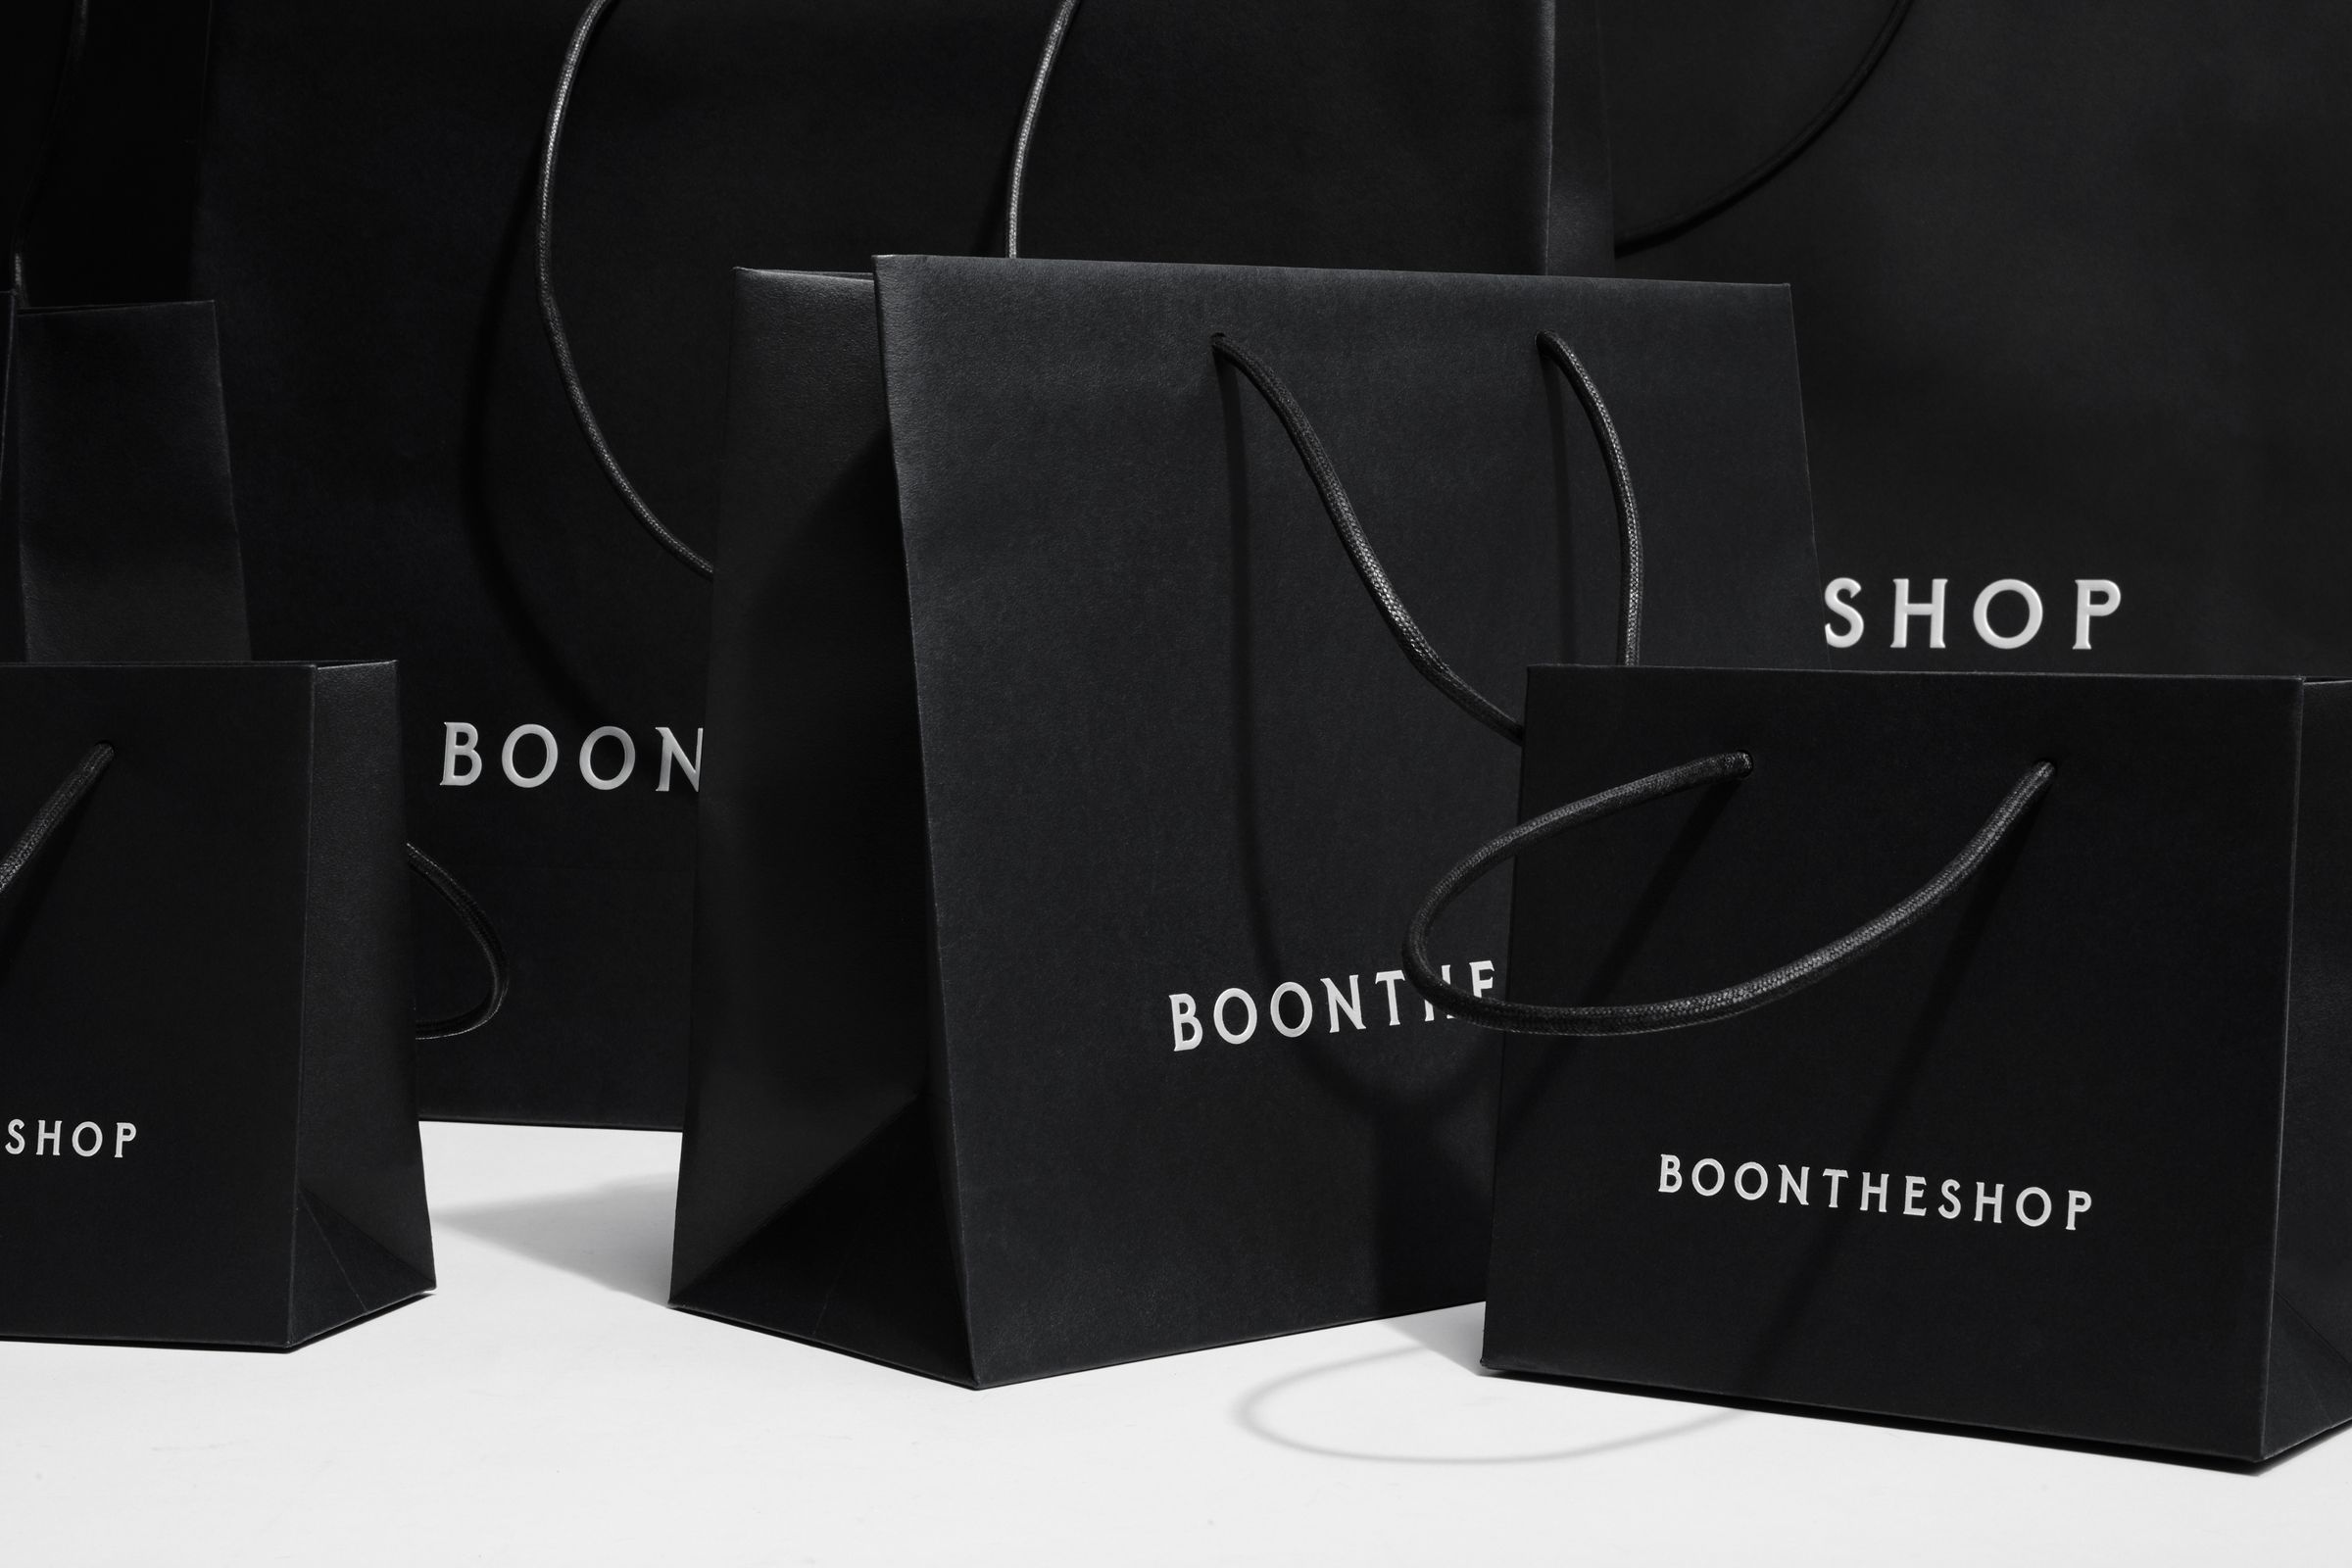 BOONTHESHOP shopping bags